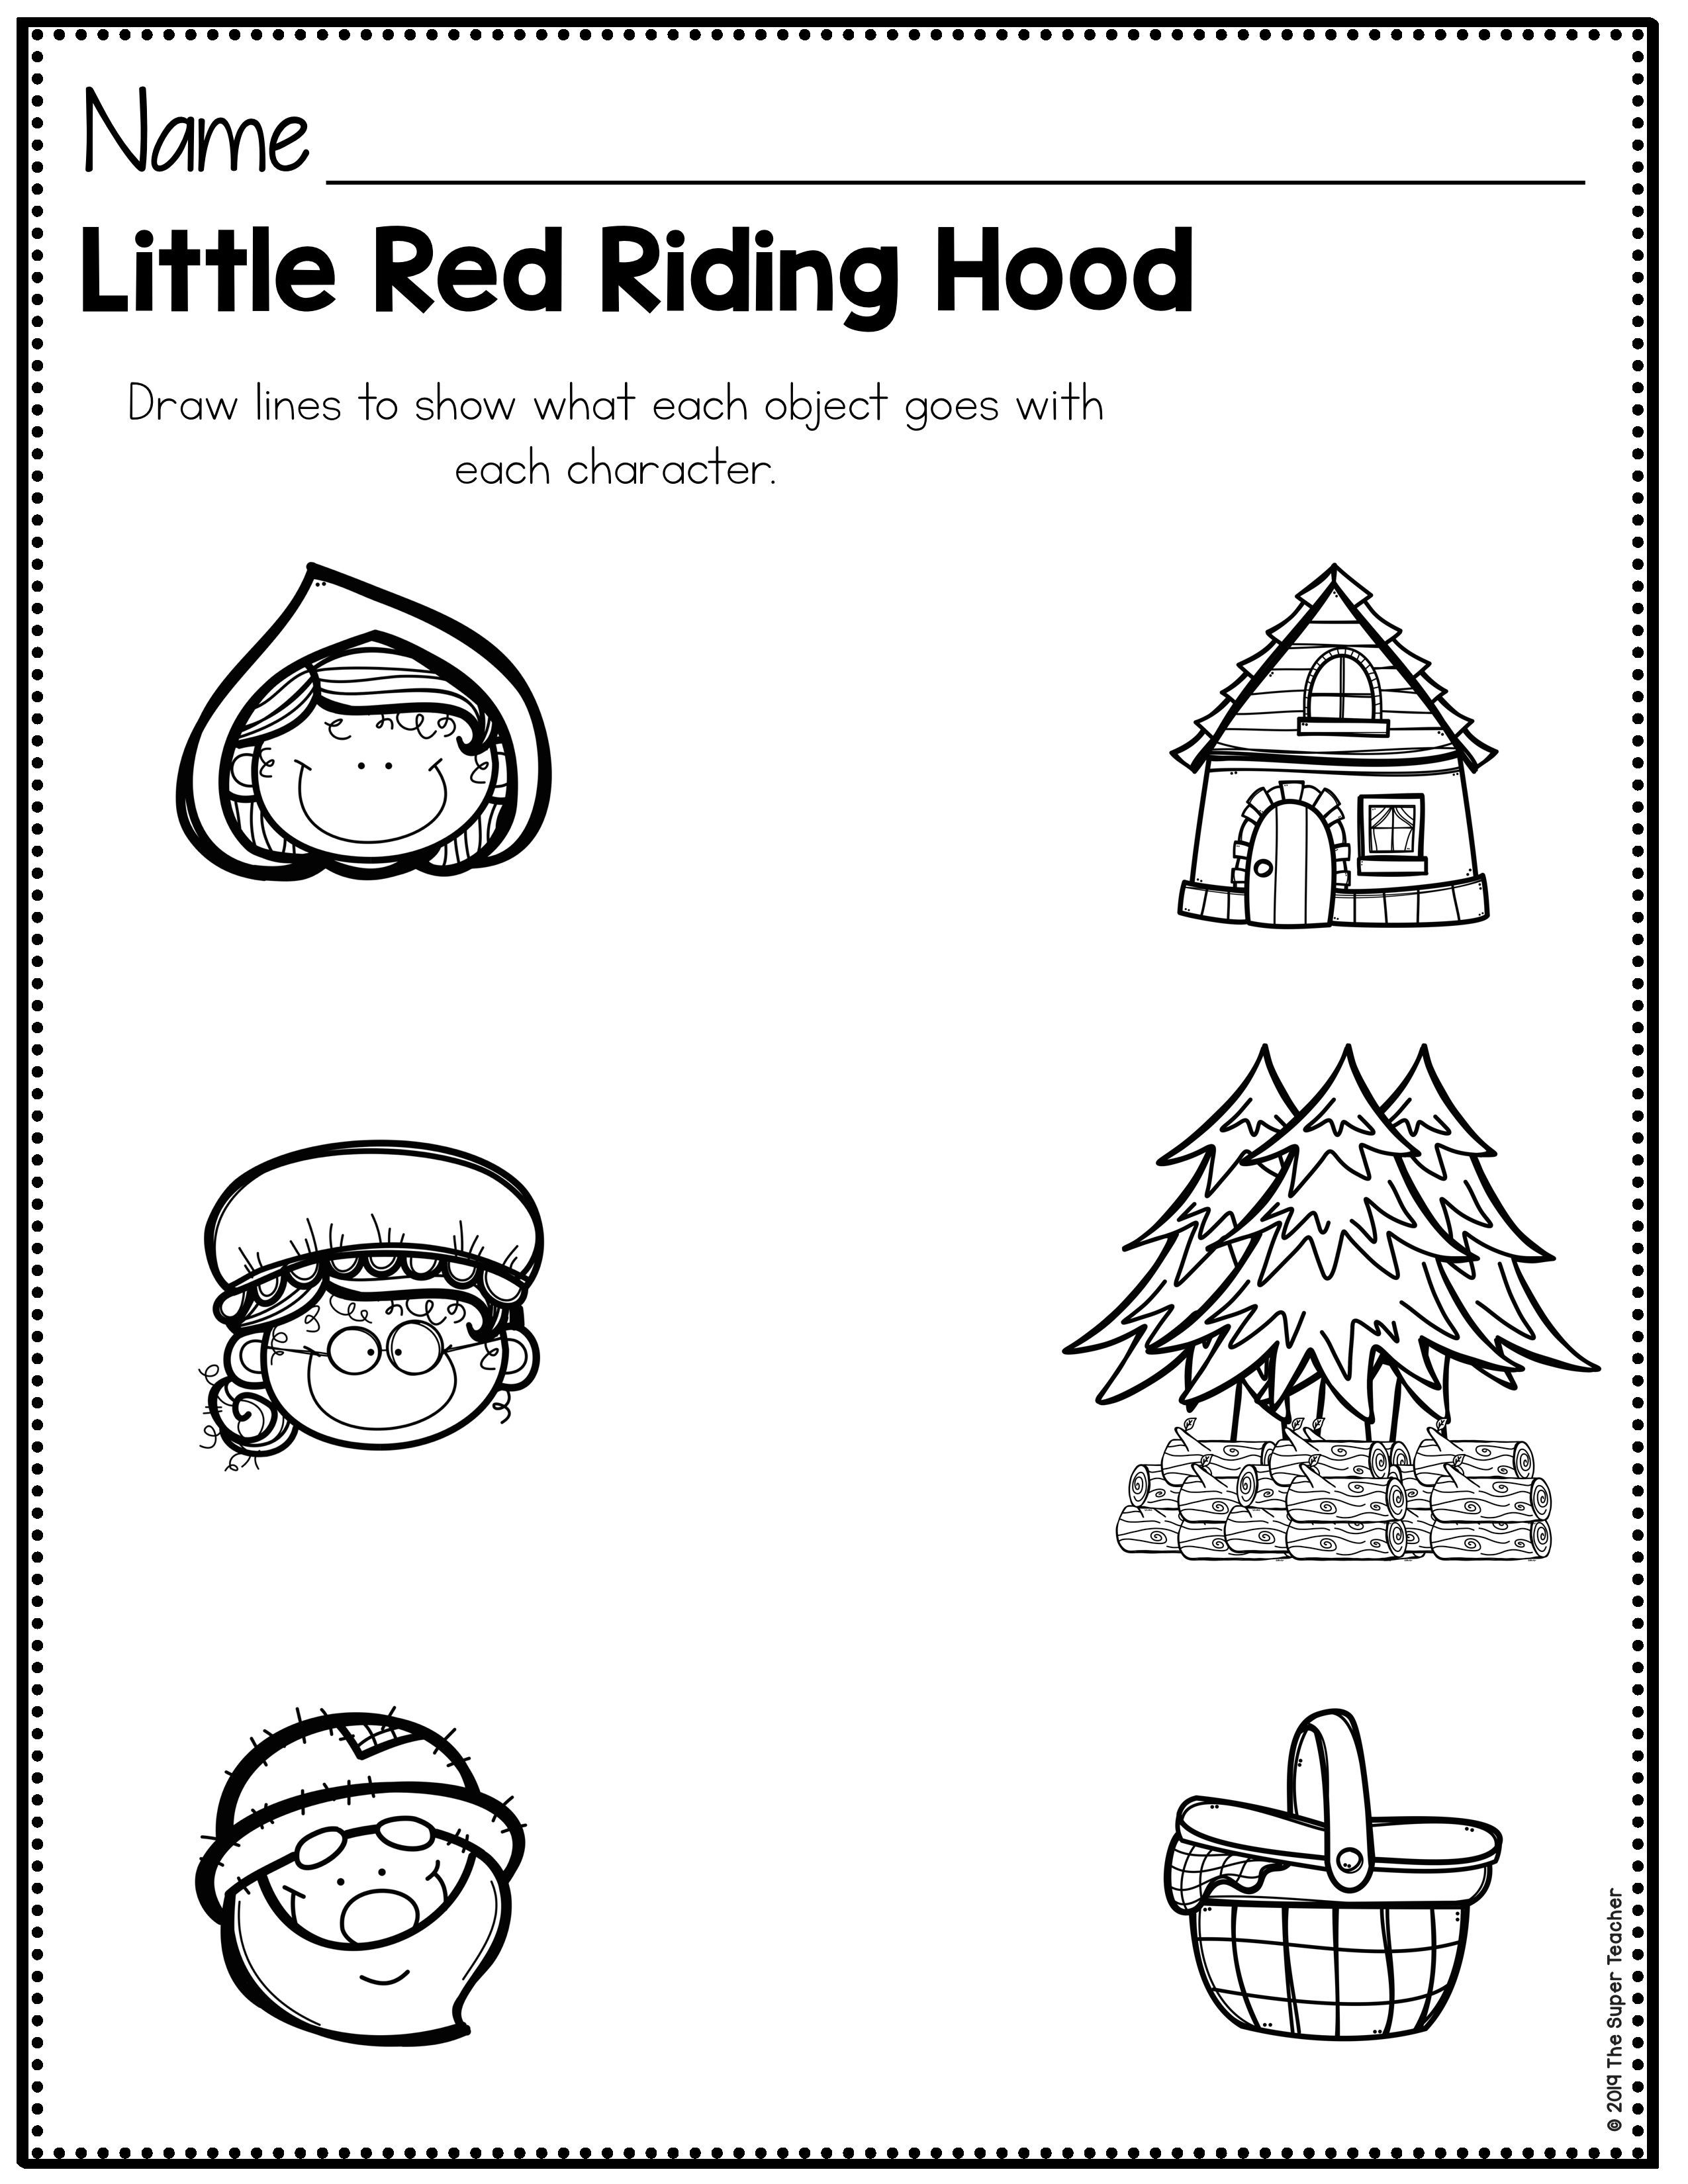 These Little Red Riding Hood Printables Are Awesome For